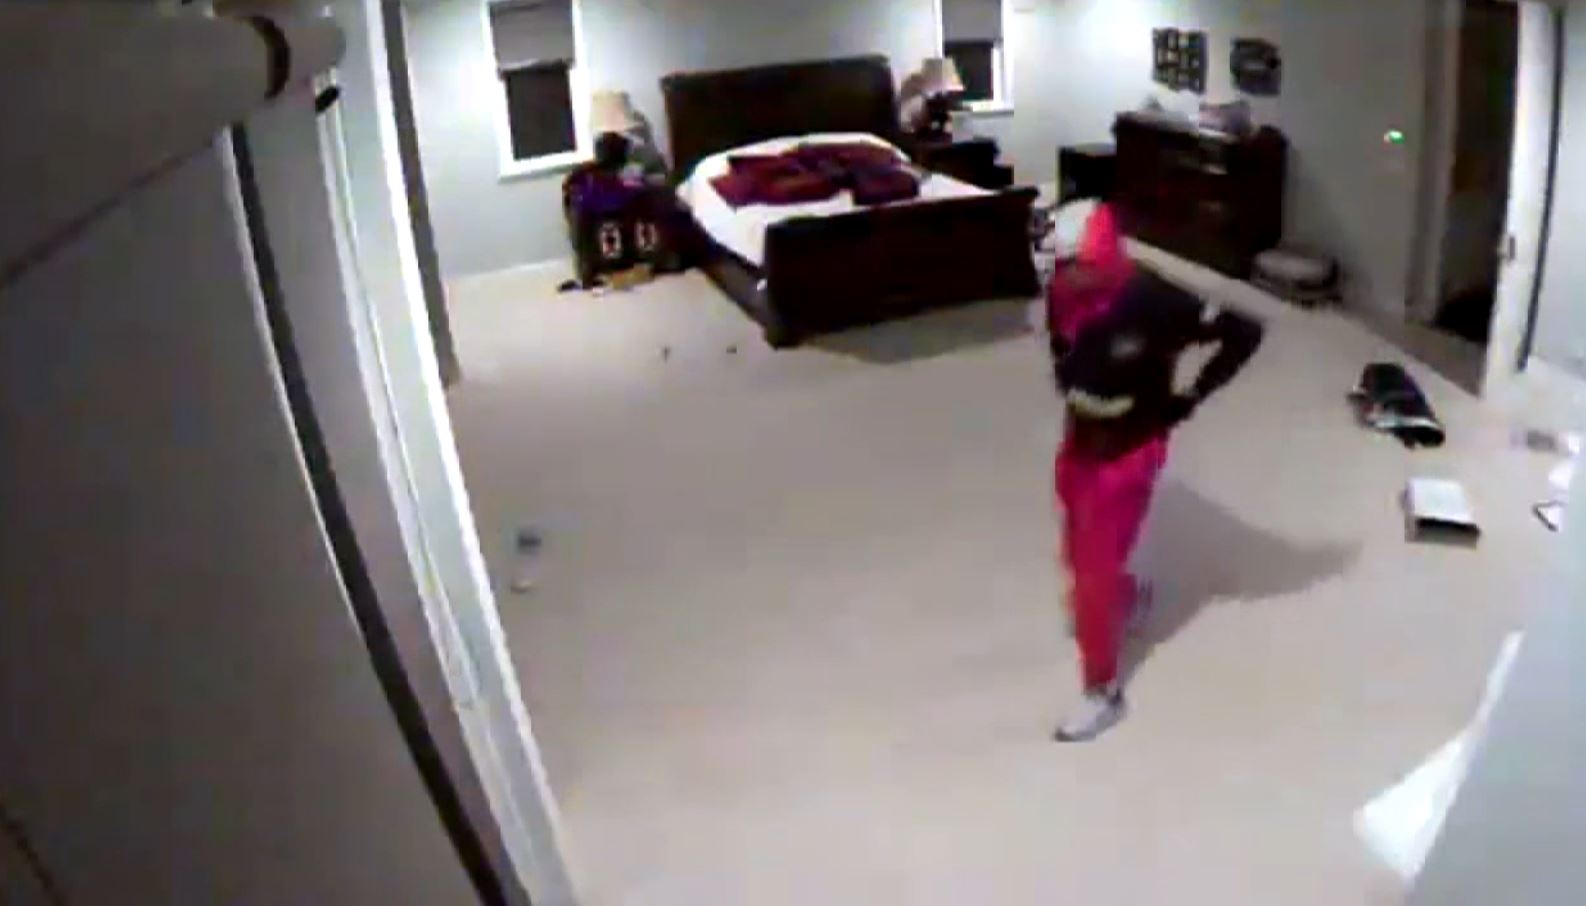 Thieves can be seen on security camera video ransacking a second-floor bedroom at the San Fernando Valley home of Yasiel Puig before they dragged a safe from the home in a burglary Sept. 18, 2018.